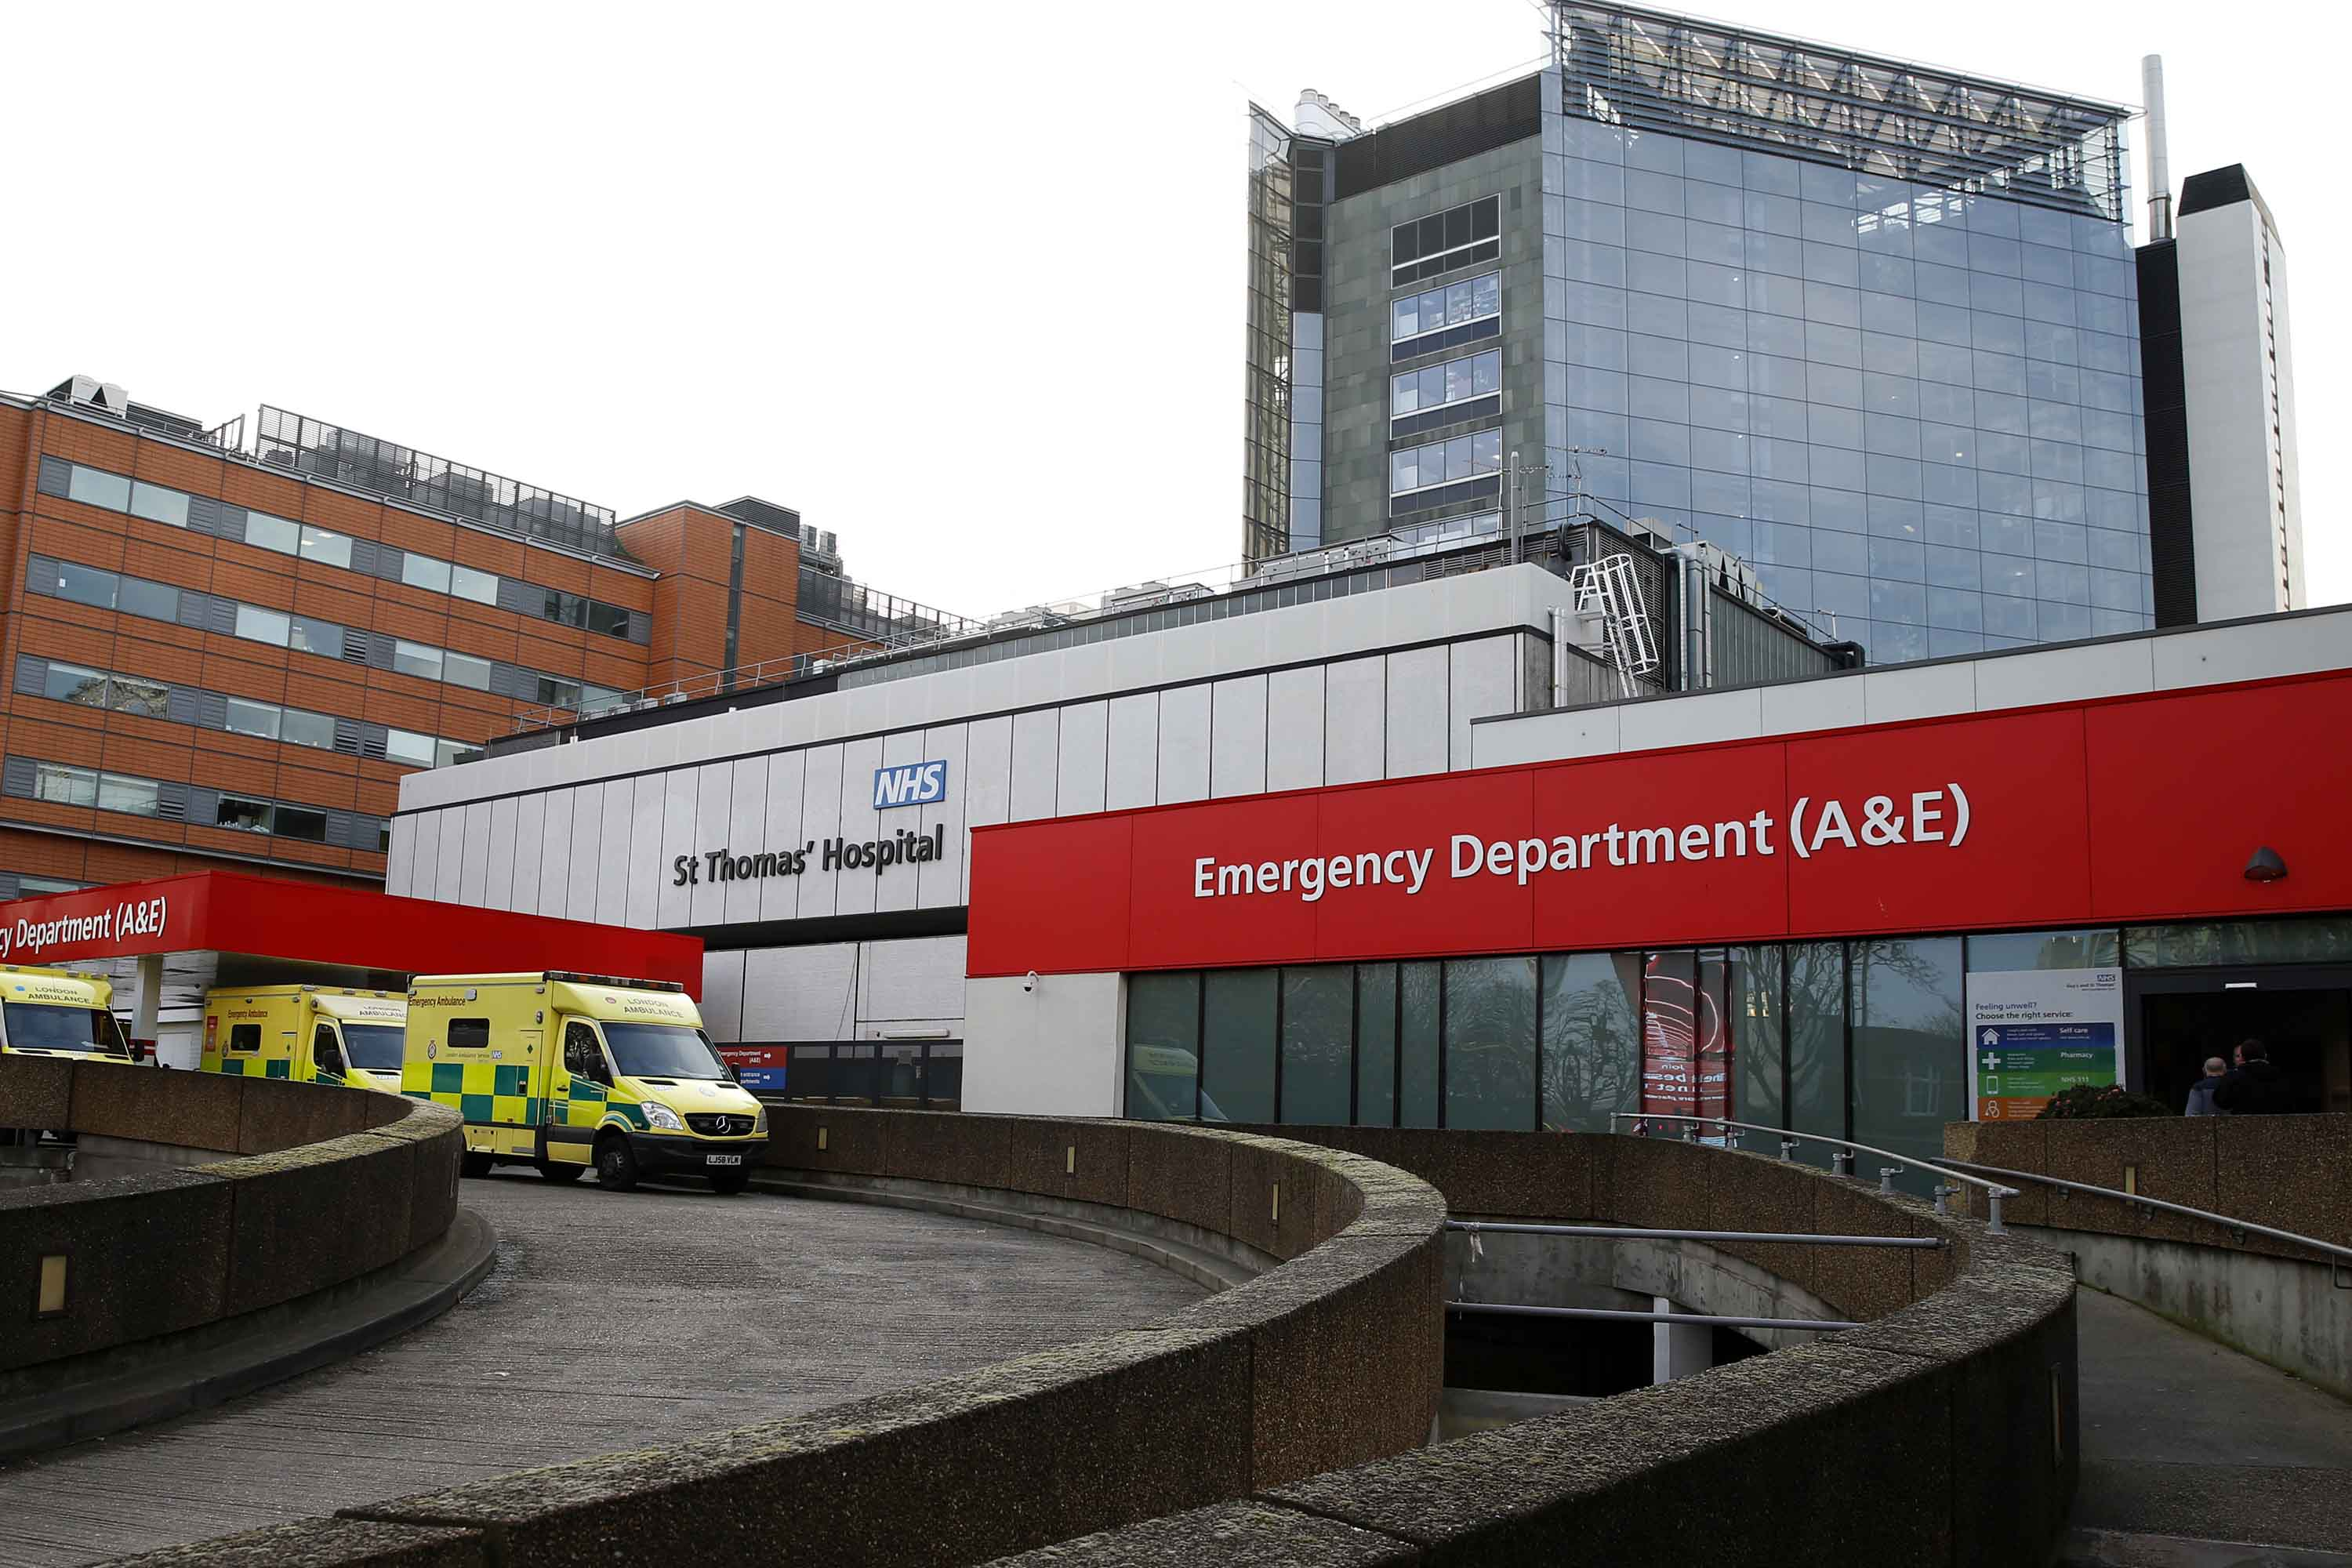 A general view shows the emergency department at St. Thomas' Hospital in London on February 7.